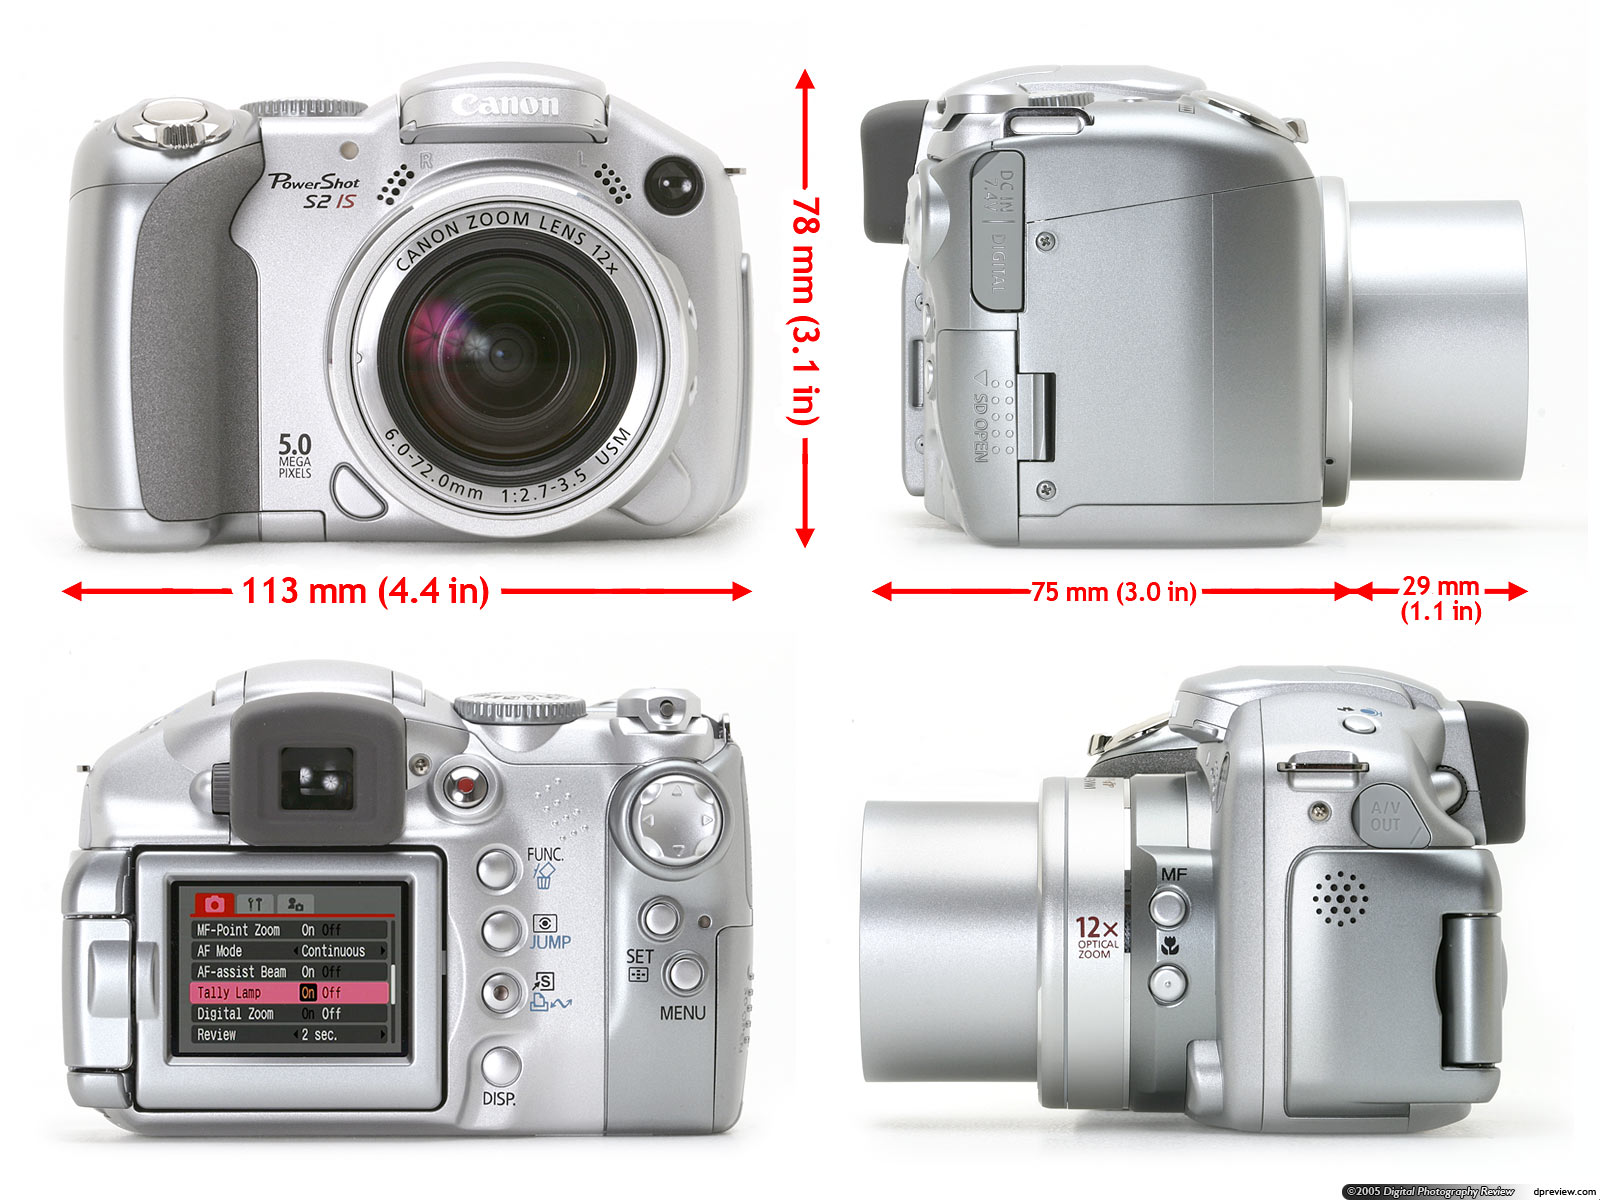 Canon Powershot S2 Is Review Digital Photography Review